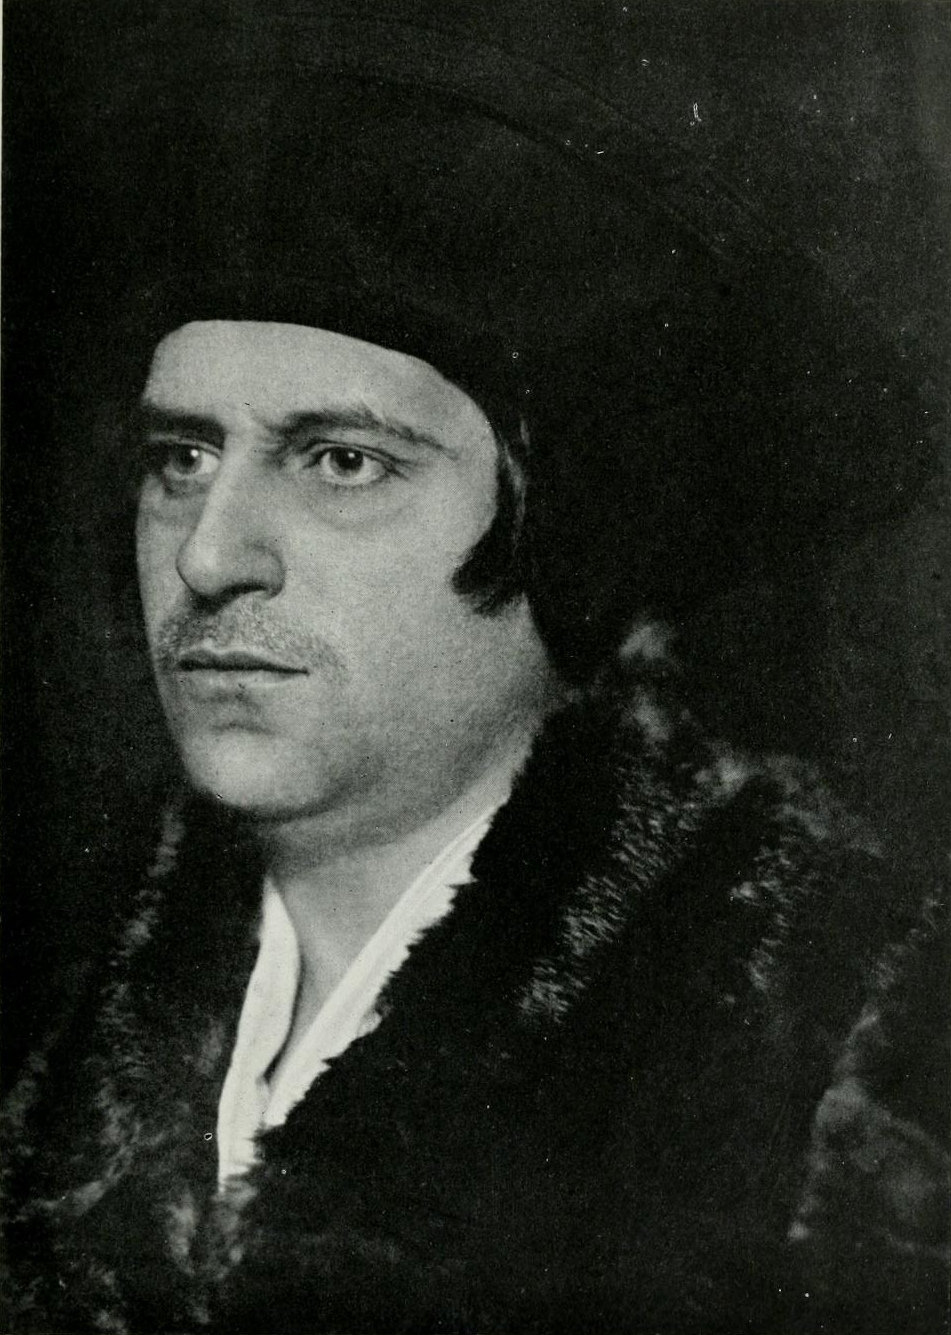 Cavendish Morton as Sir Thomas More (2).jpg